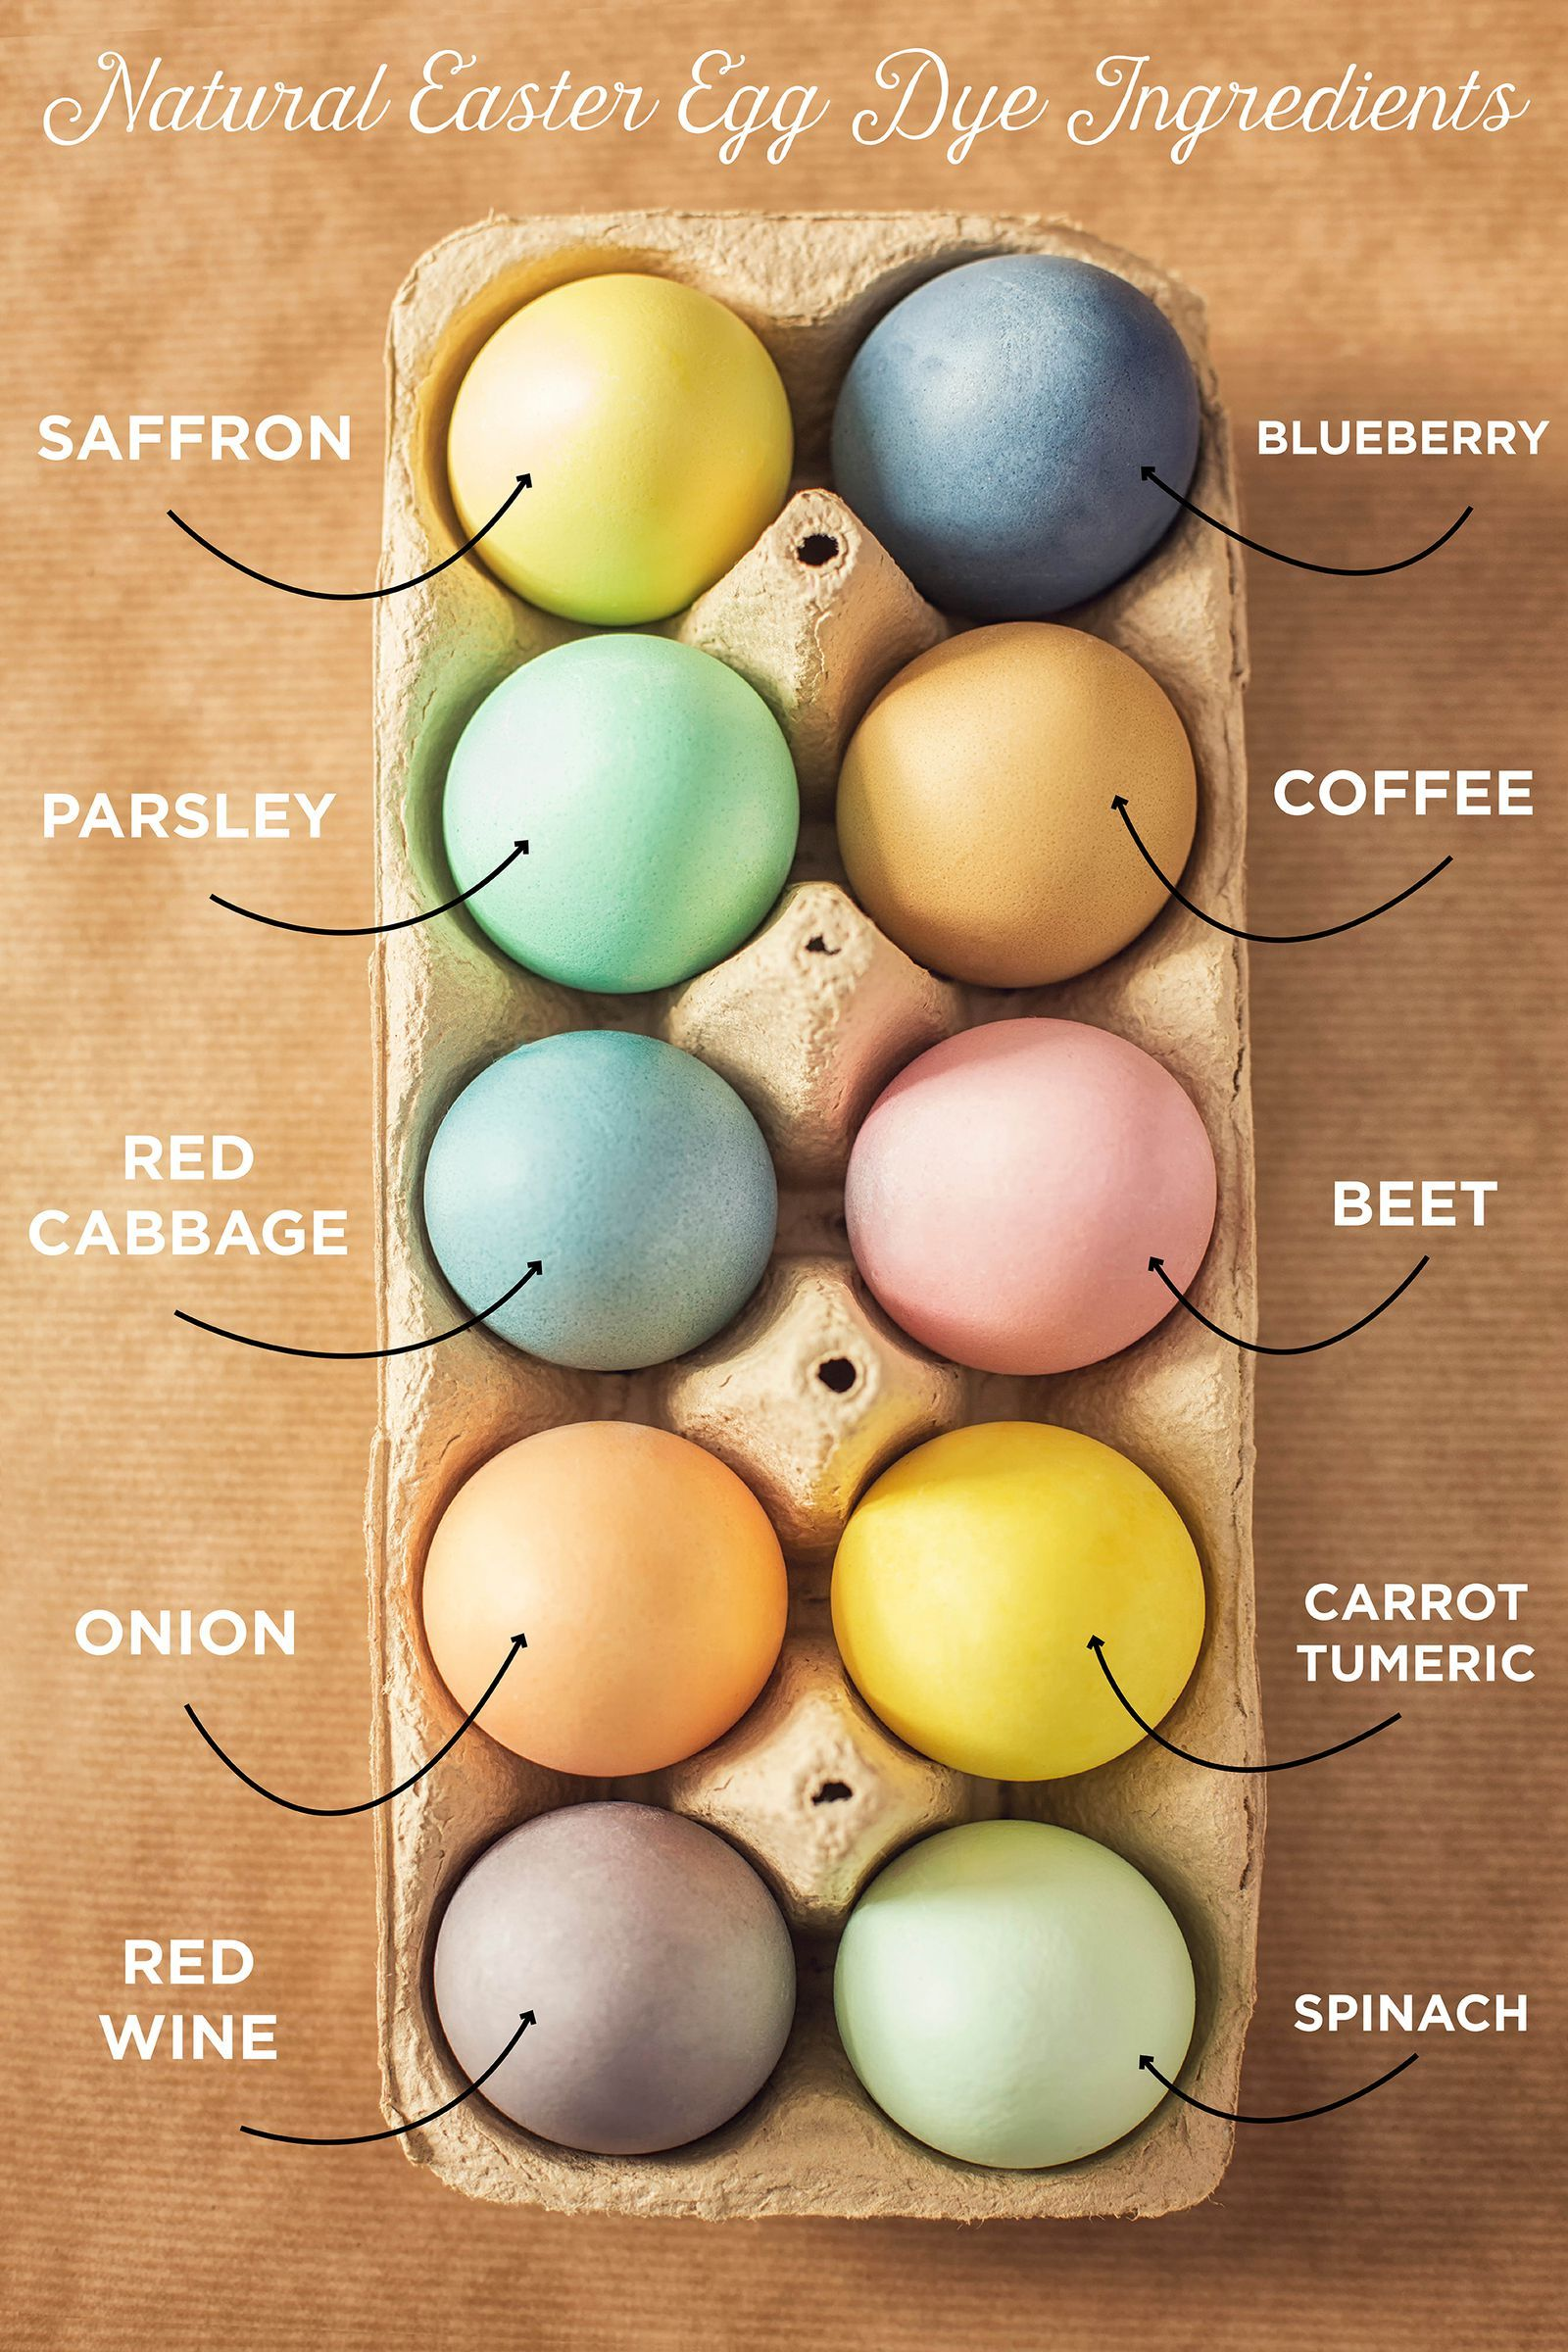 How to Make Natural Easter Egg Dye from Ingredients in Your